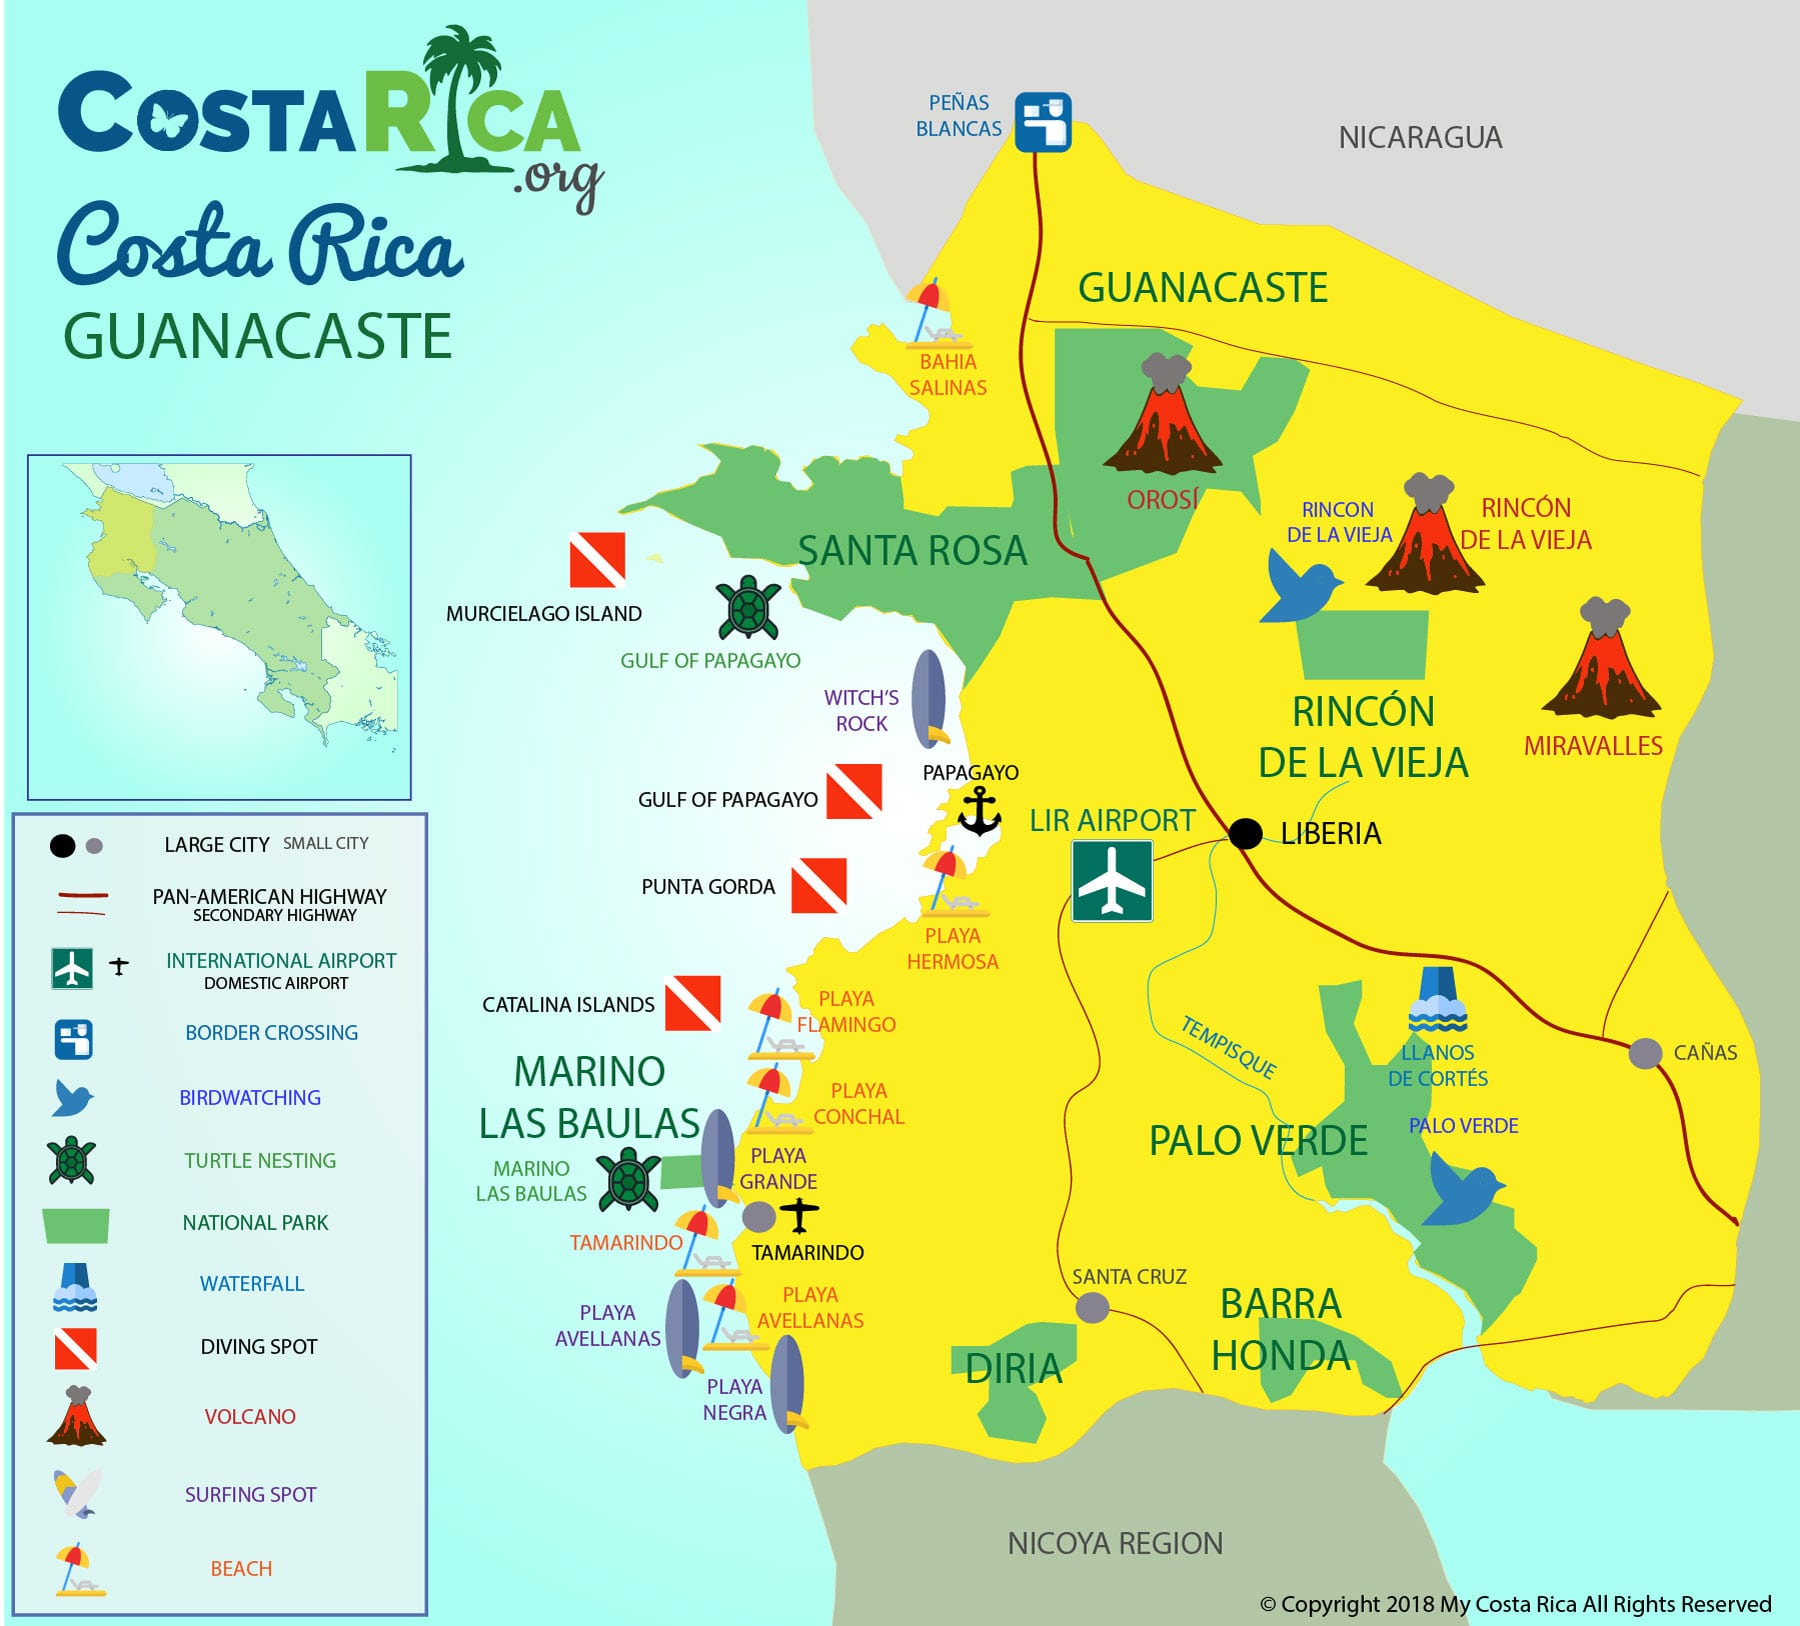 London Points Of Interest Map.Costa Rica Maps Every Map You Need For Your Trip To Costa Rica